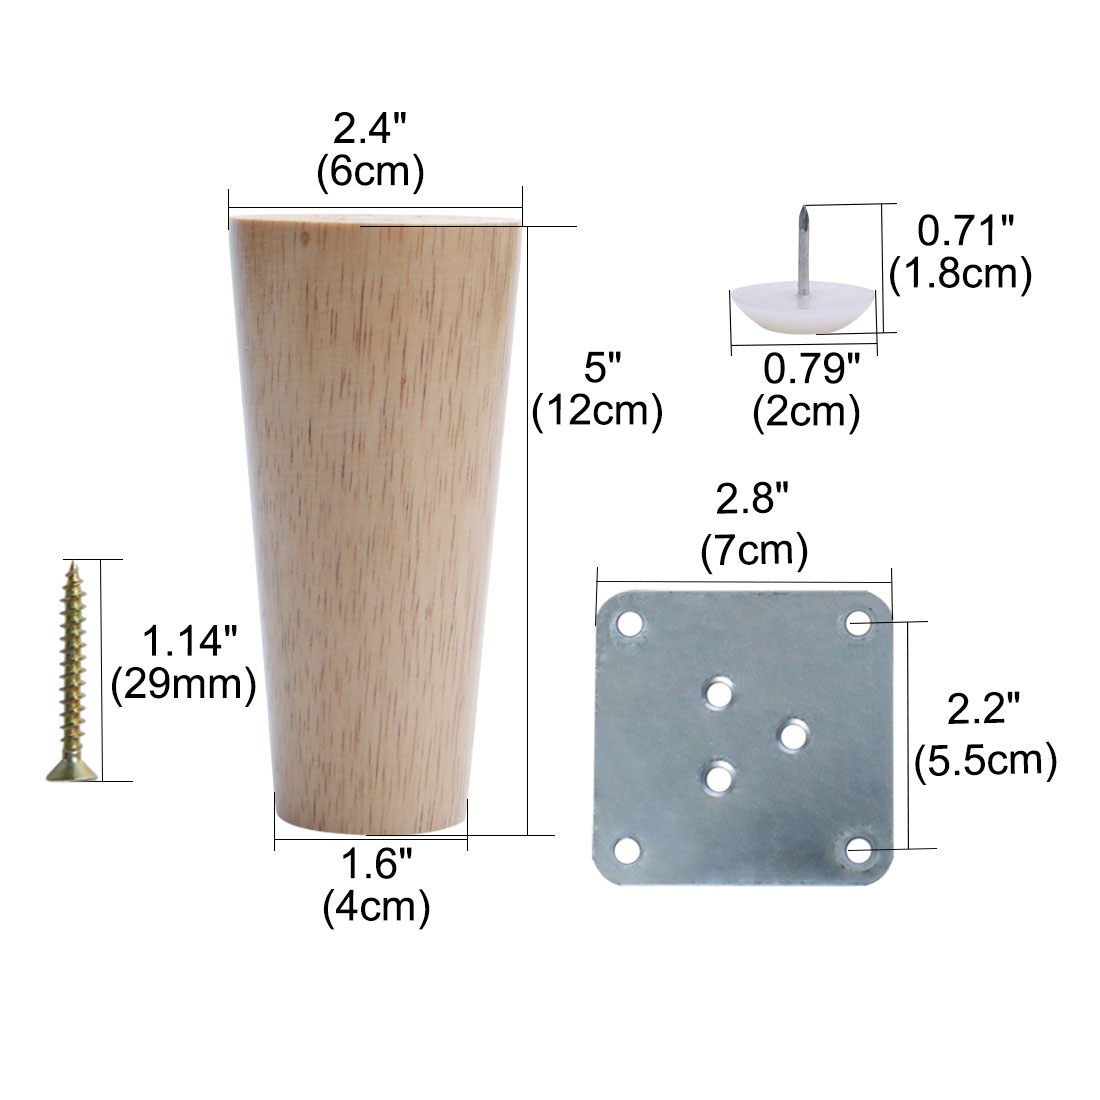 "5"" Wood Furniture Leg Chair Cabinet Cupboard Feet Replacement Height Adjuster - image 5 of 7"